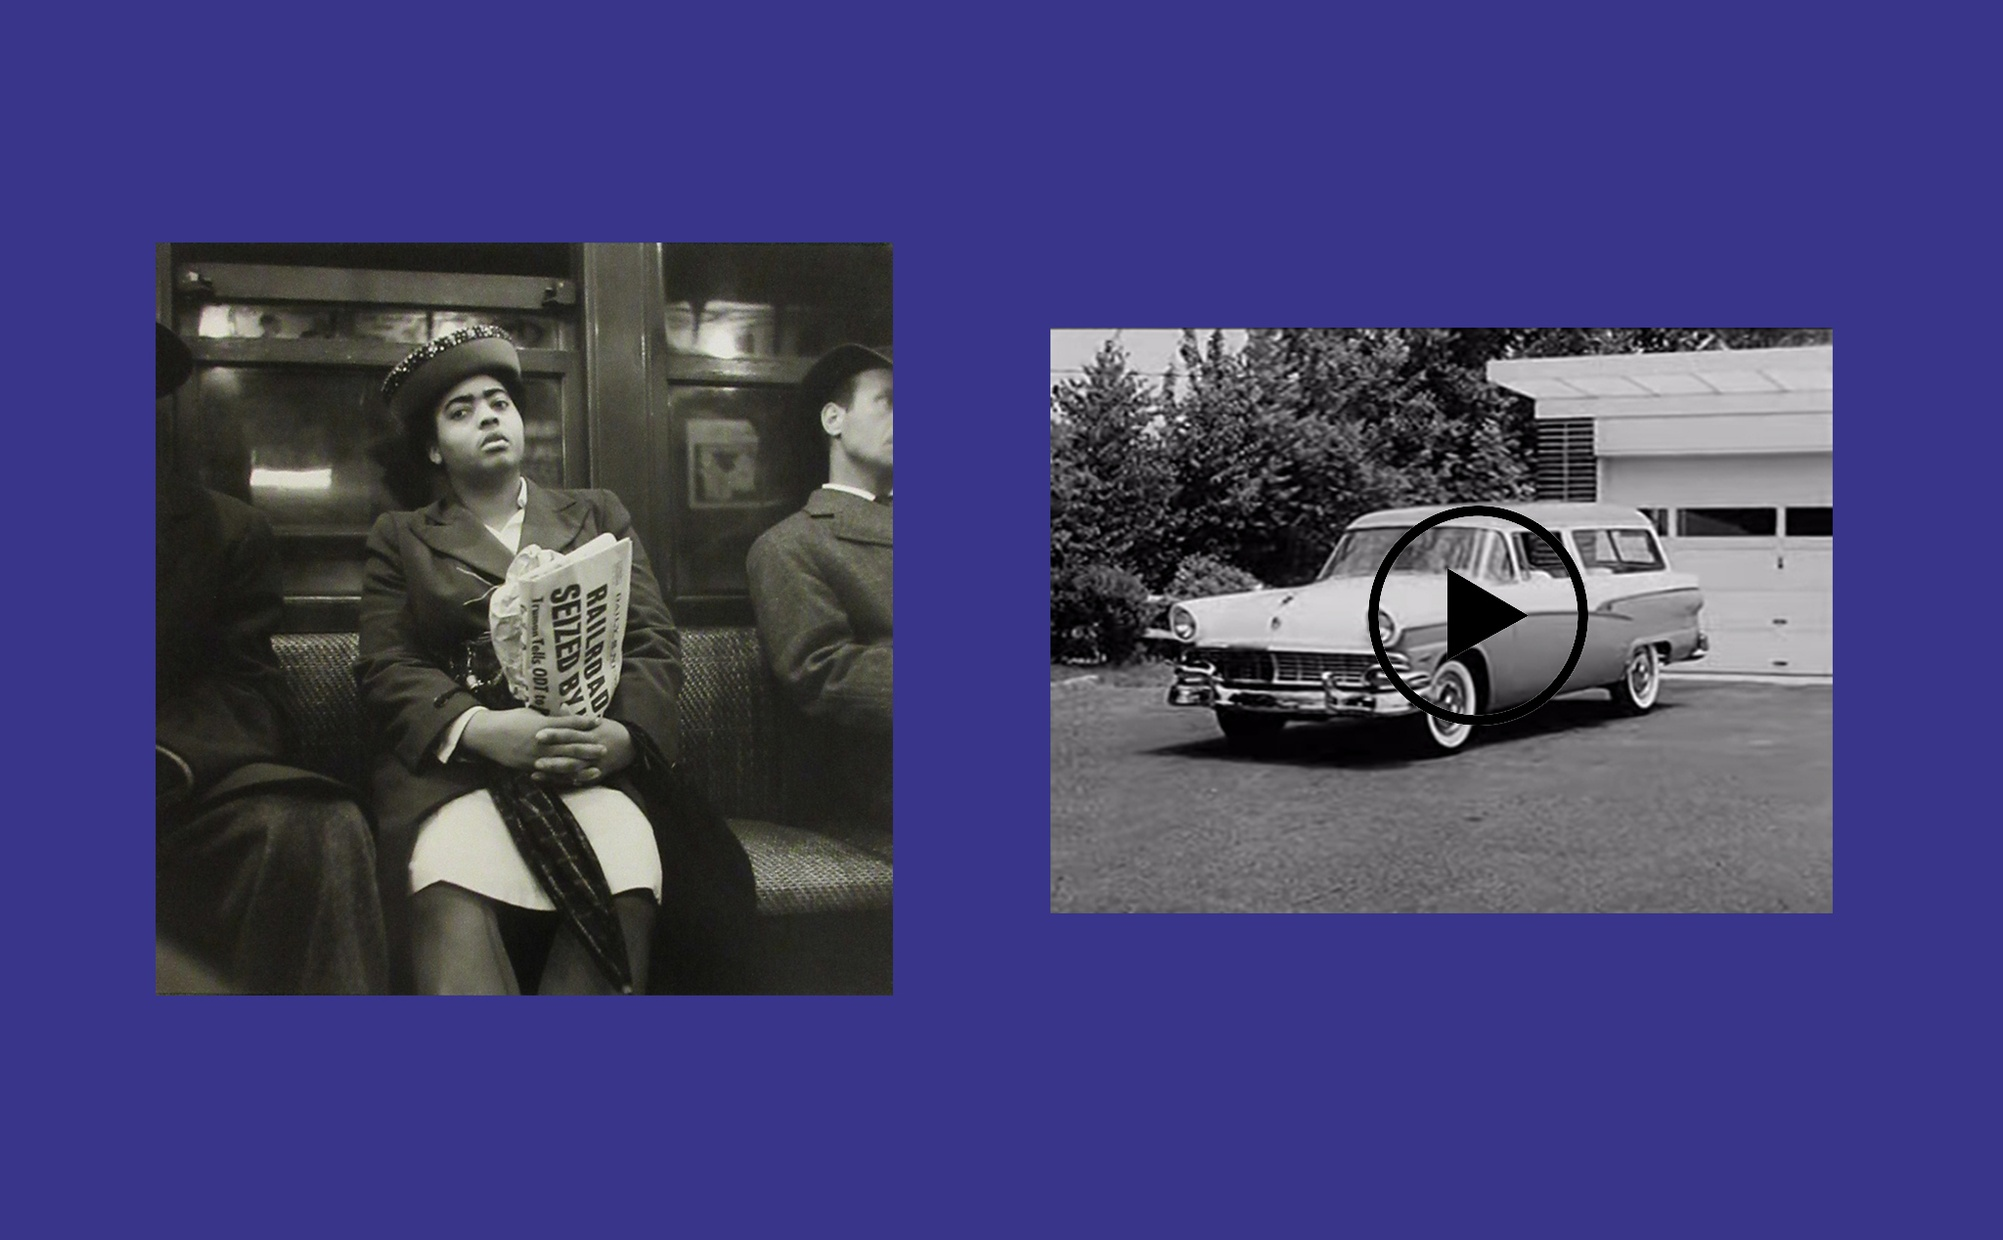 Two images side by side, one image is a black and white photograph of a dark-skinned woman sitting on a subway seat looking tired, and the other image is a black and white film still of a 1950s station wagon parked in front of a garage.